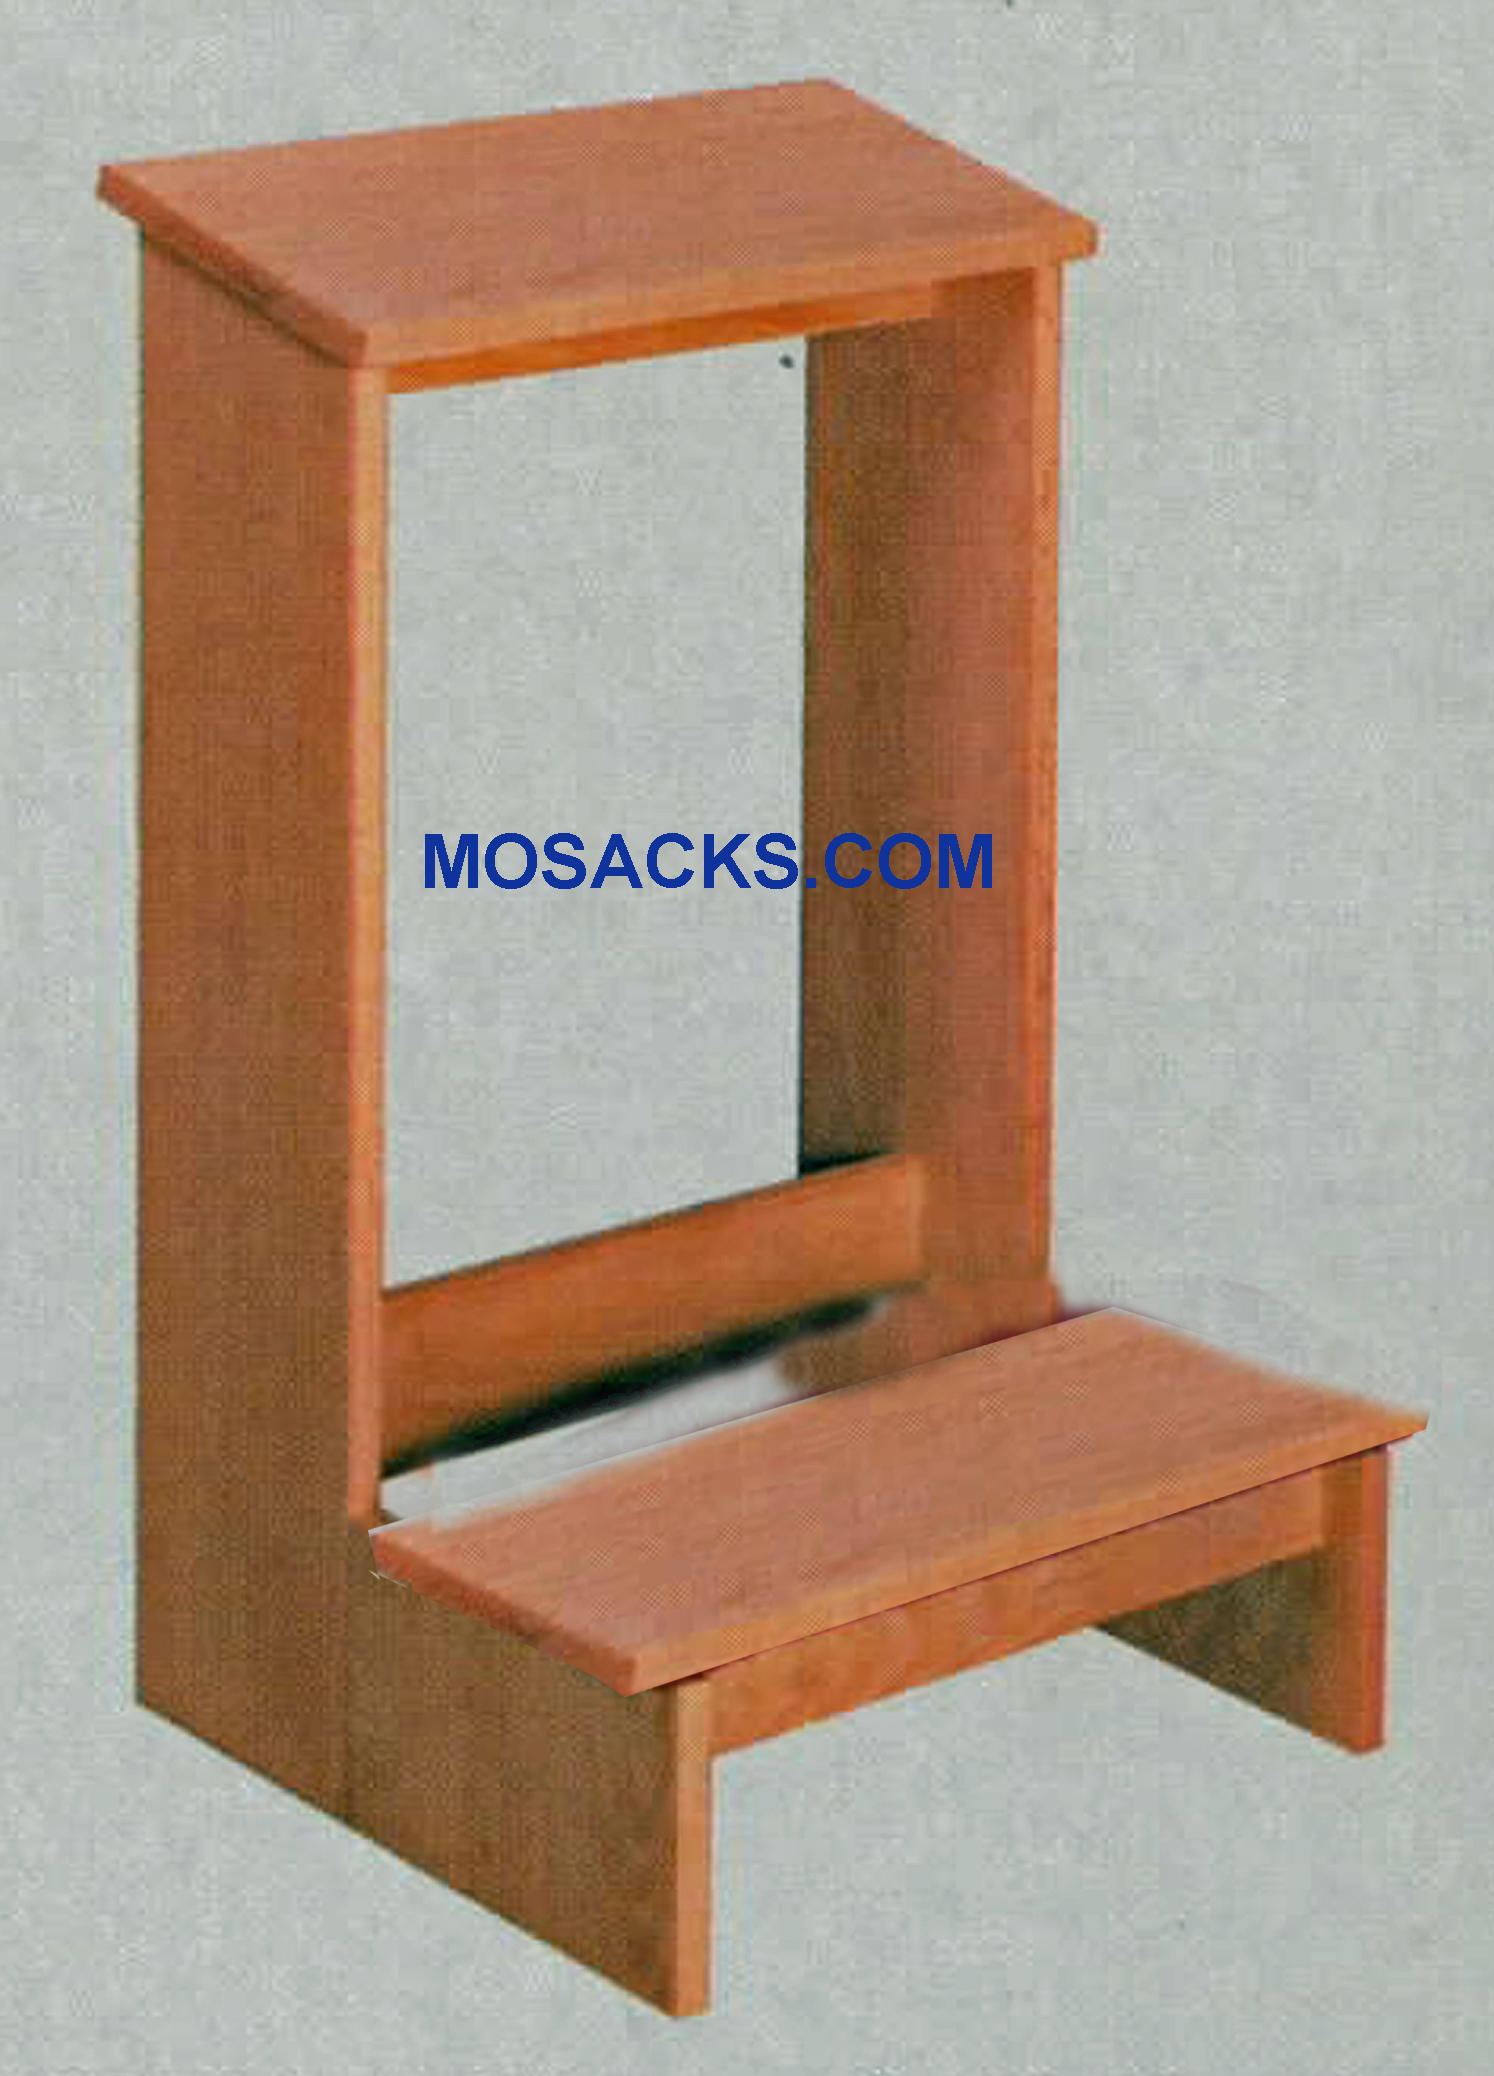 "W Brand Prie Dieu Kneeler w/ shelf 19"" w x 19"" d x 30"" h #2301. This Prie Dieu Kneeler with a slanted shelf is finished wood with a wooden kneeler. Various wood stains are available for this Church Kneeler Prie Dieu #2301"